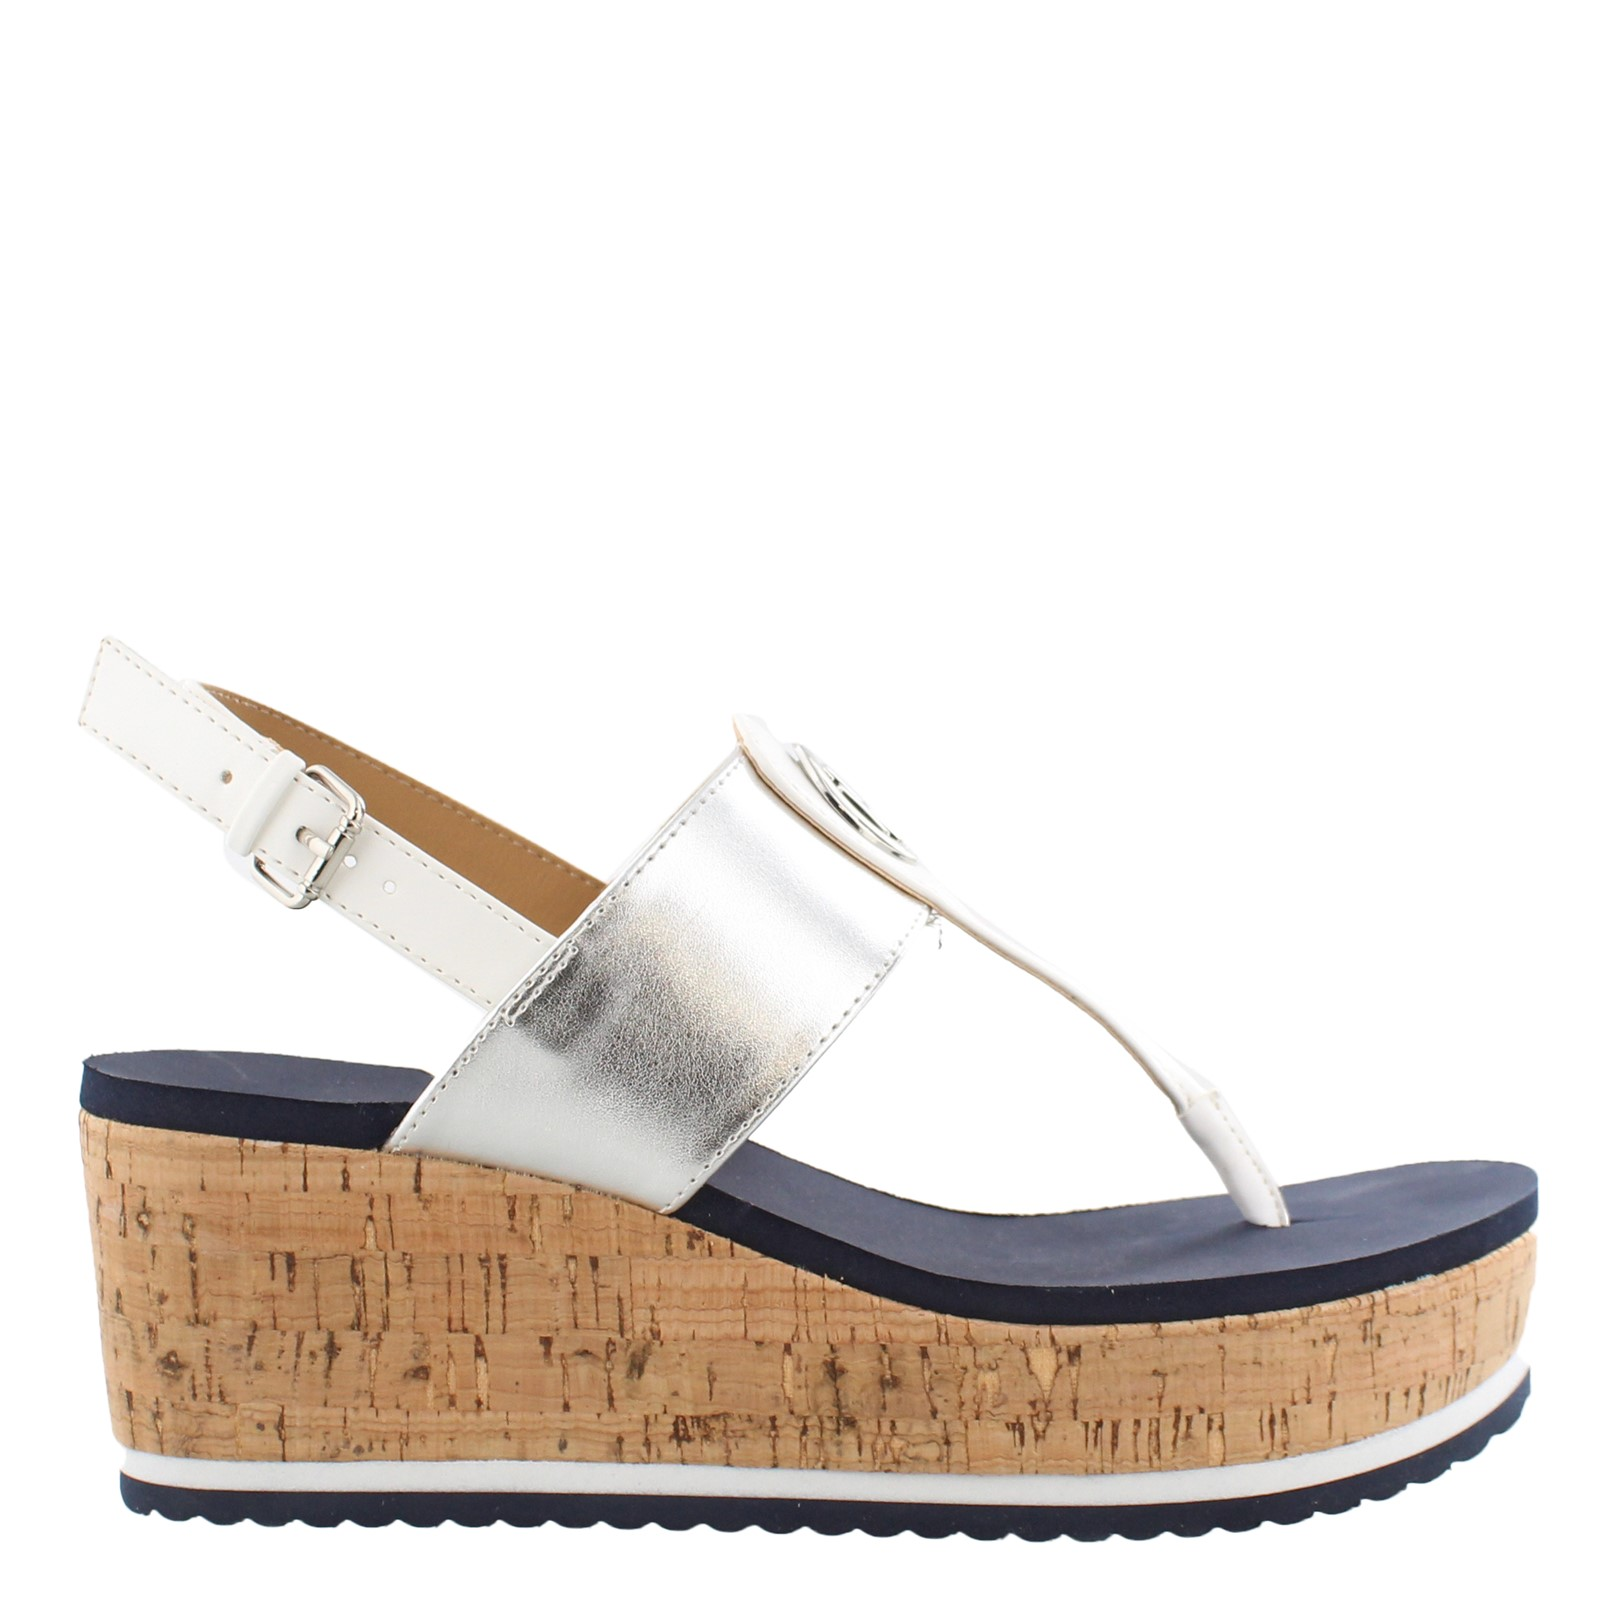 09d24184734 Women's Tommy Hilfiger, Gunther Wedge Sandals